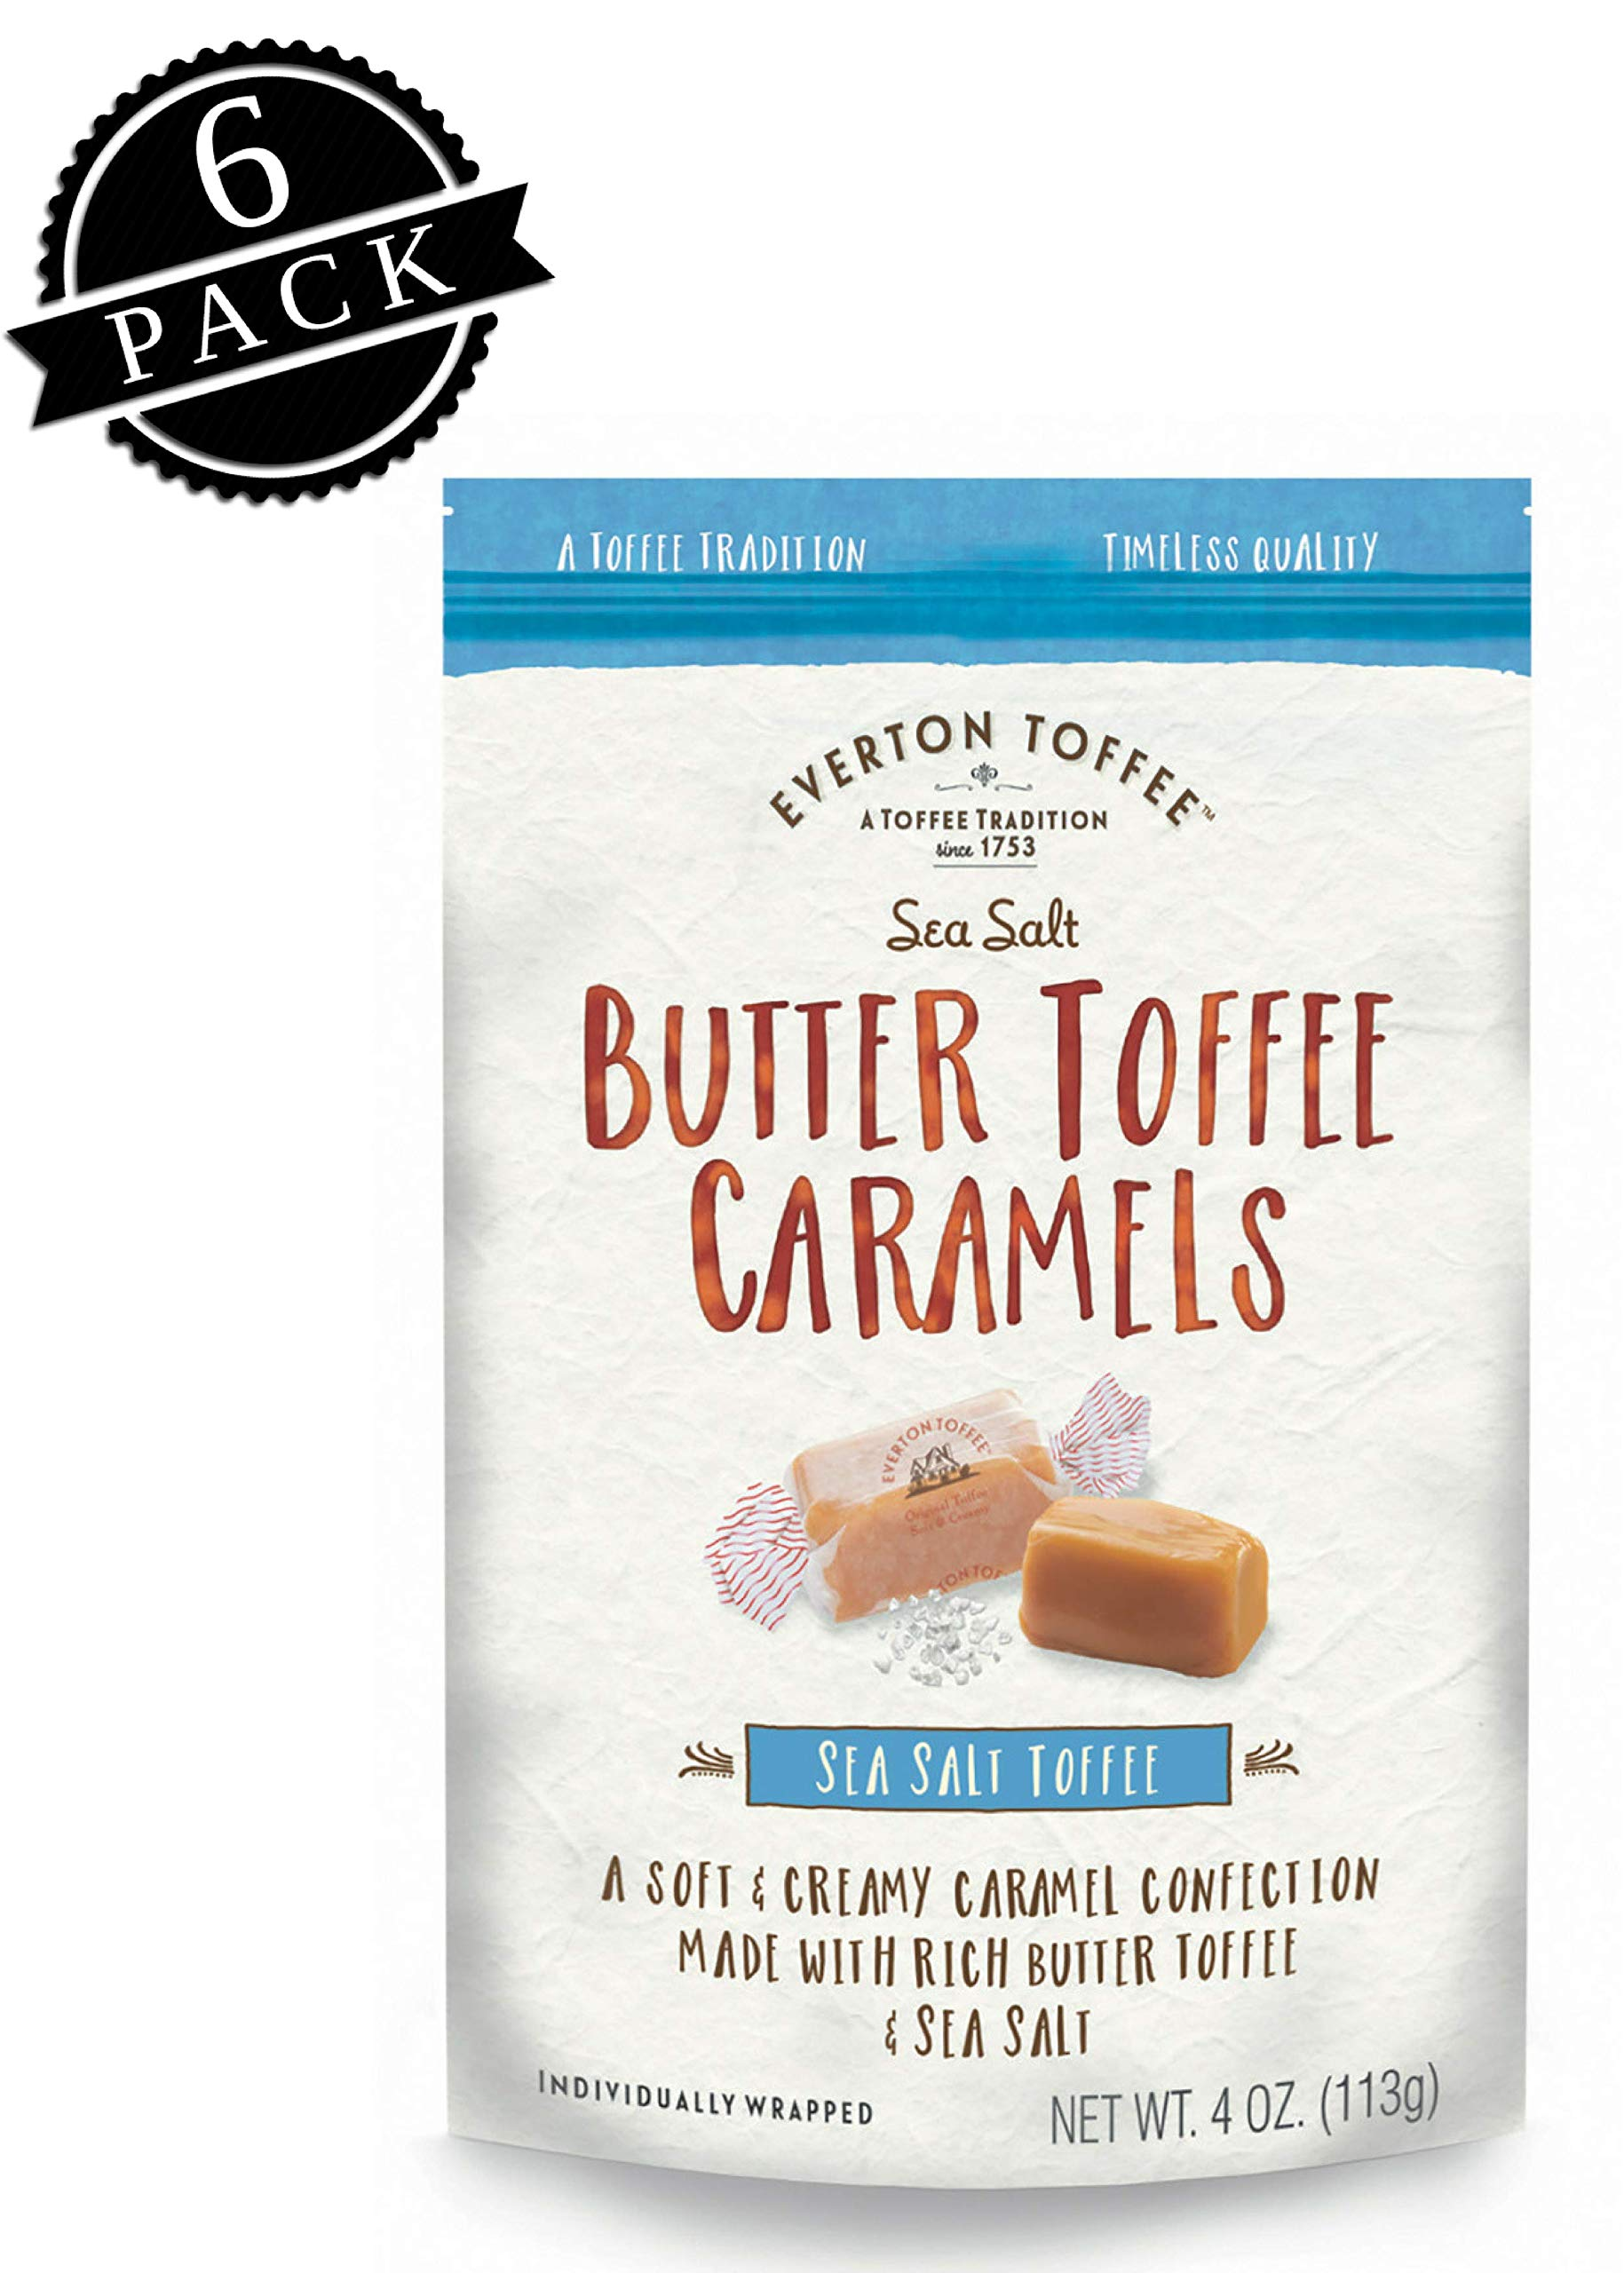 Everton Toffee Butter Toffee Caramels, Sea Salt Flavor (4 oz. bag, 6-pack). Gourmet, Artisan Soft and Creamy Toffee Caramels, Small Batch Crafted Carmel Candy Treats by Everton Toffee